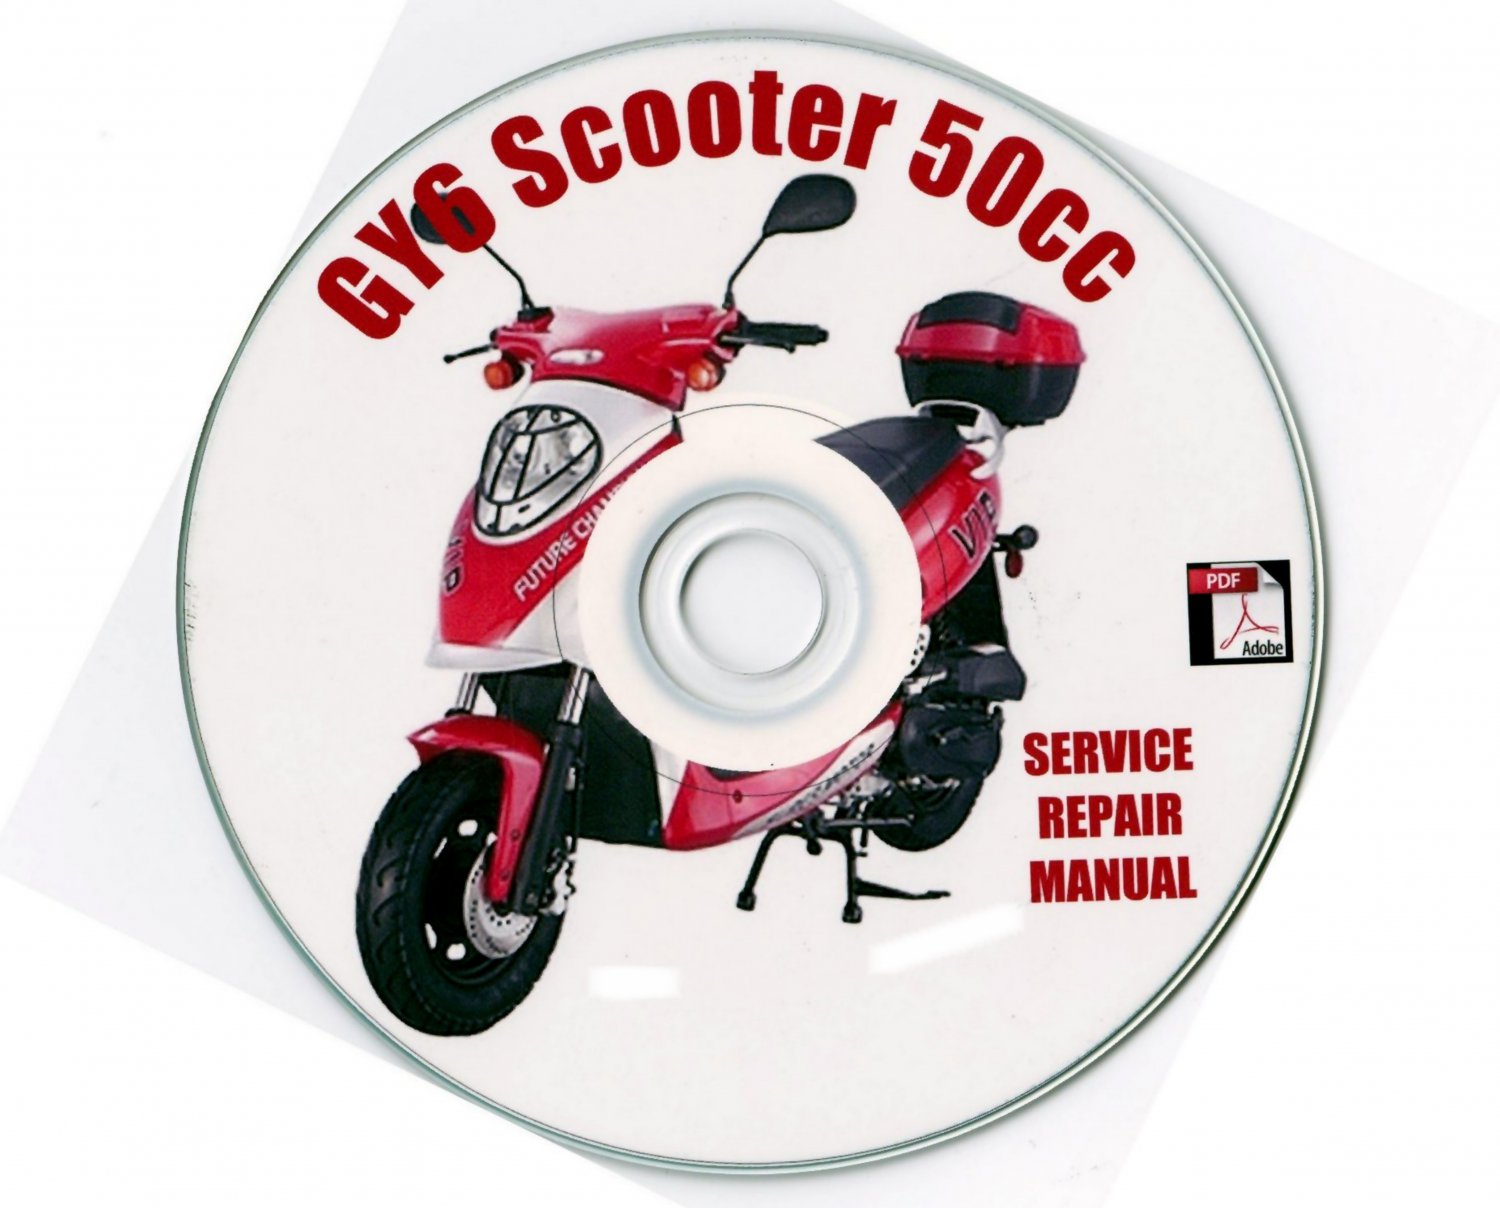 Scooter 50 Repair Service Manual 50cc GY6 Chinese & Others